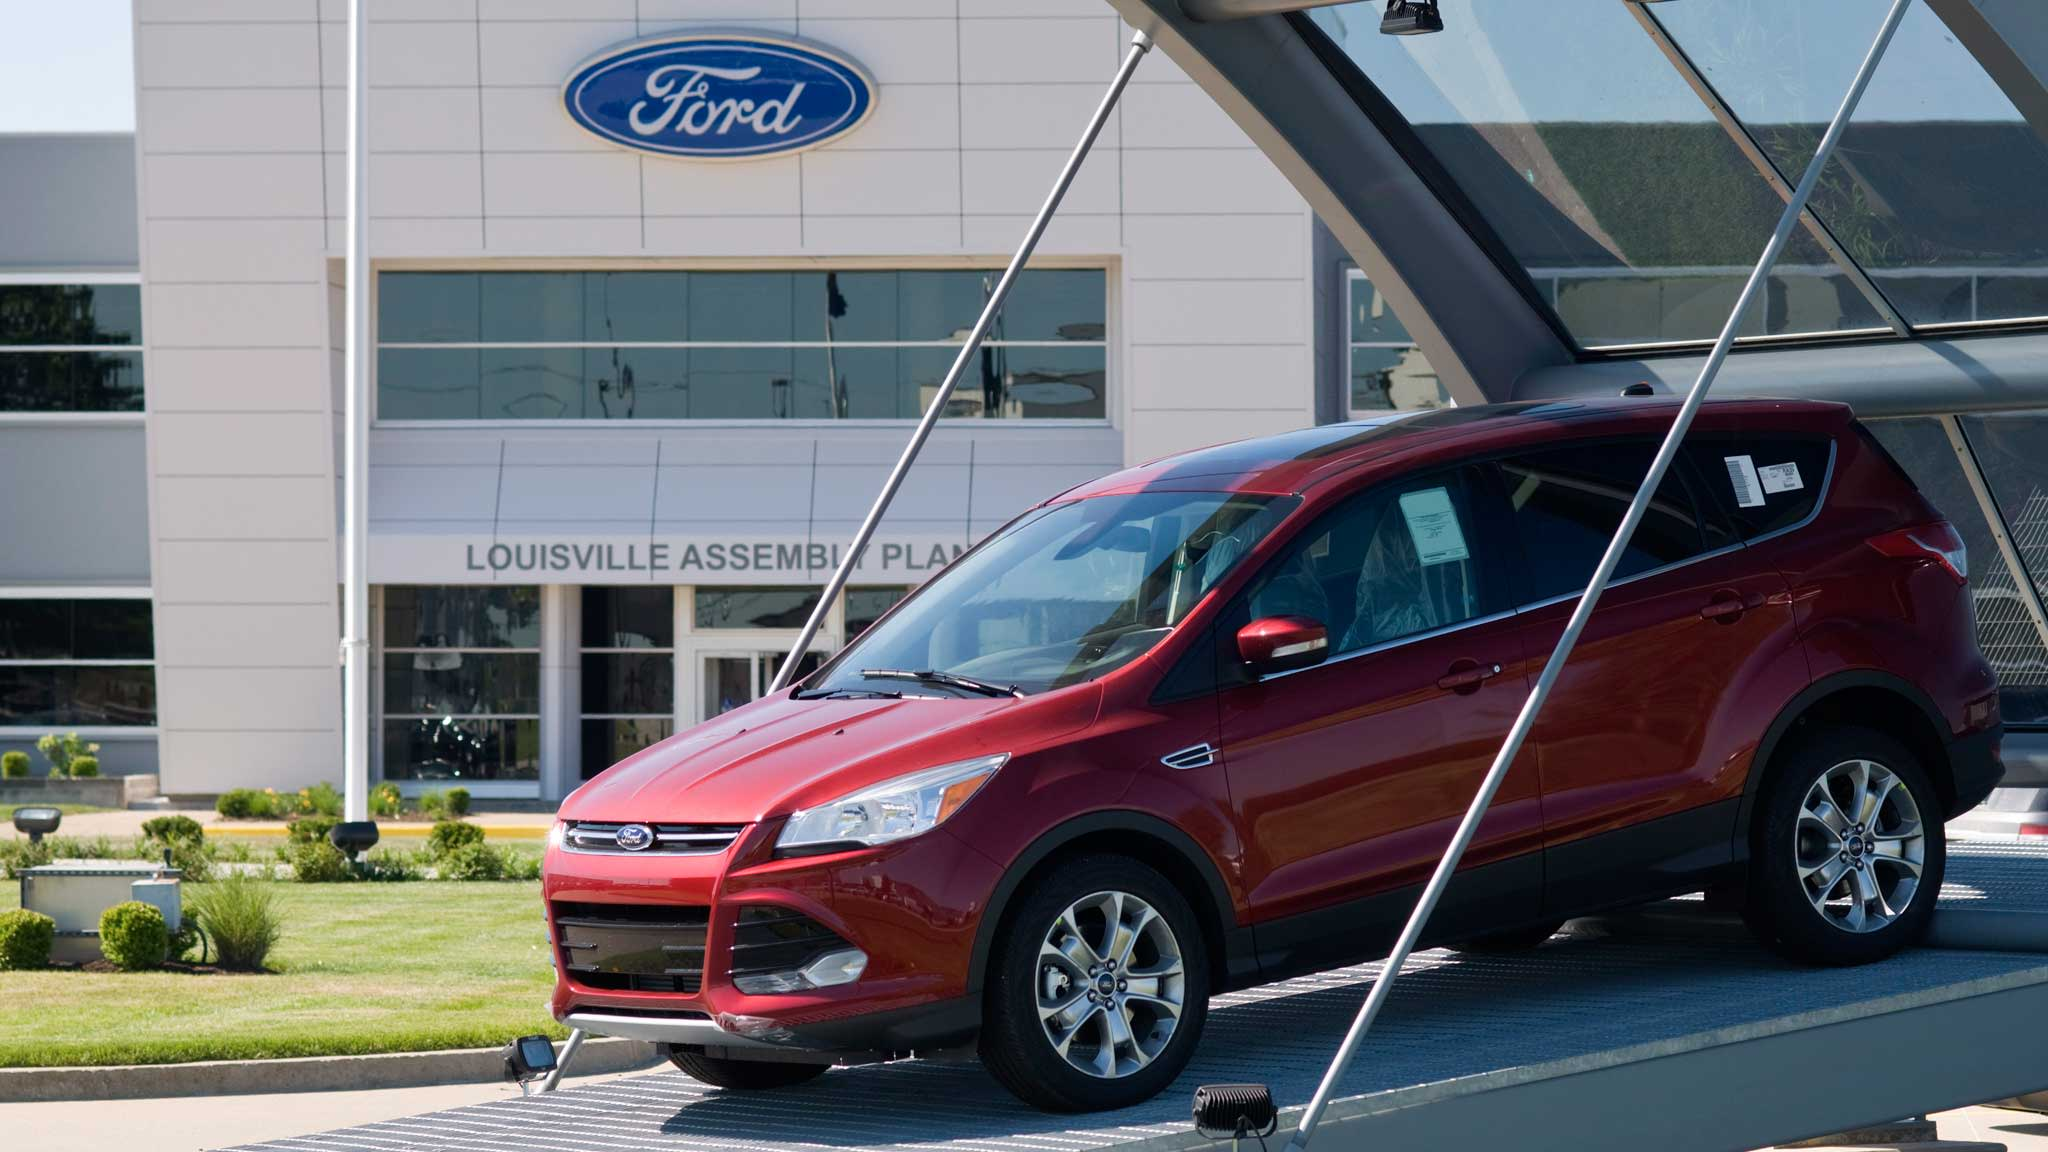 Ford Q1 earnings down 39 per cent | Financial Times